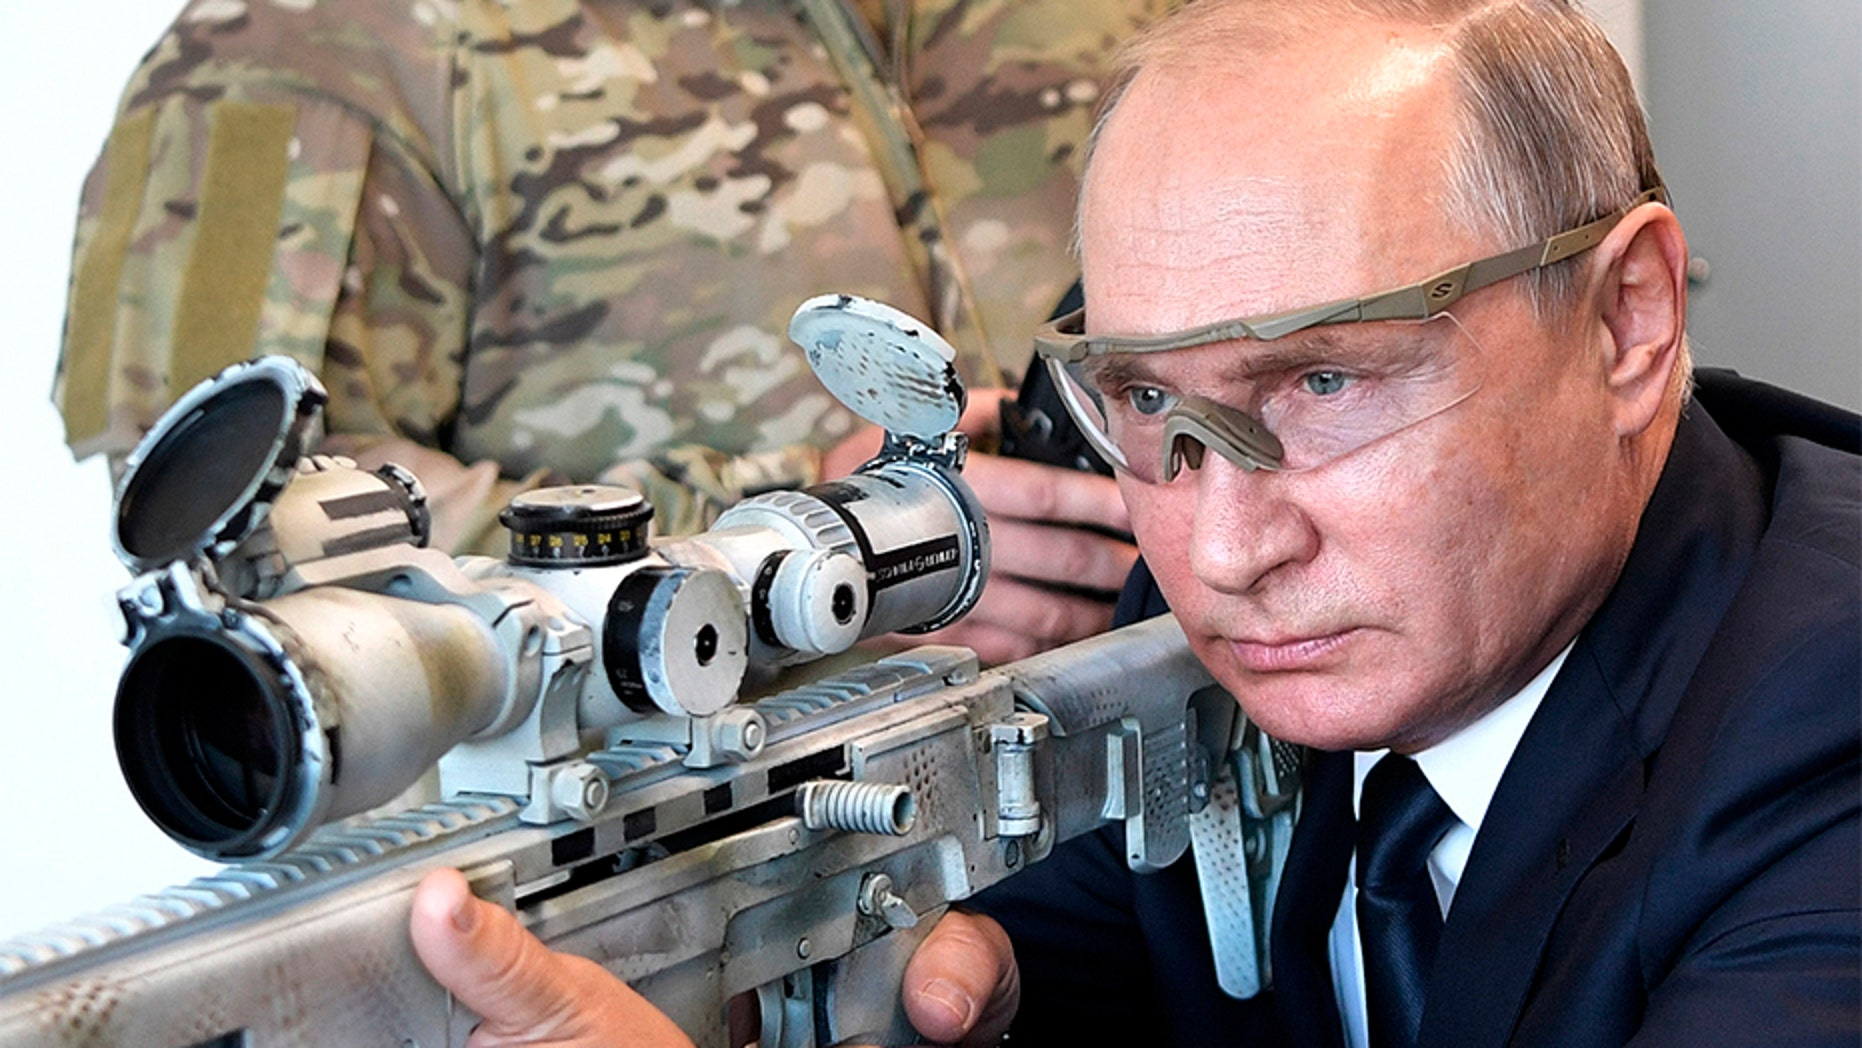 Russian President Vladimir Putin aims a sniper rifle during a visit to the Patriot military exhibition center outside Moscow, Russia.